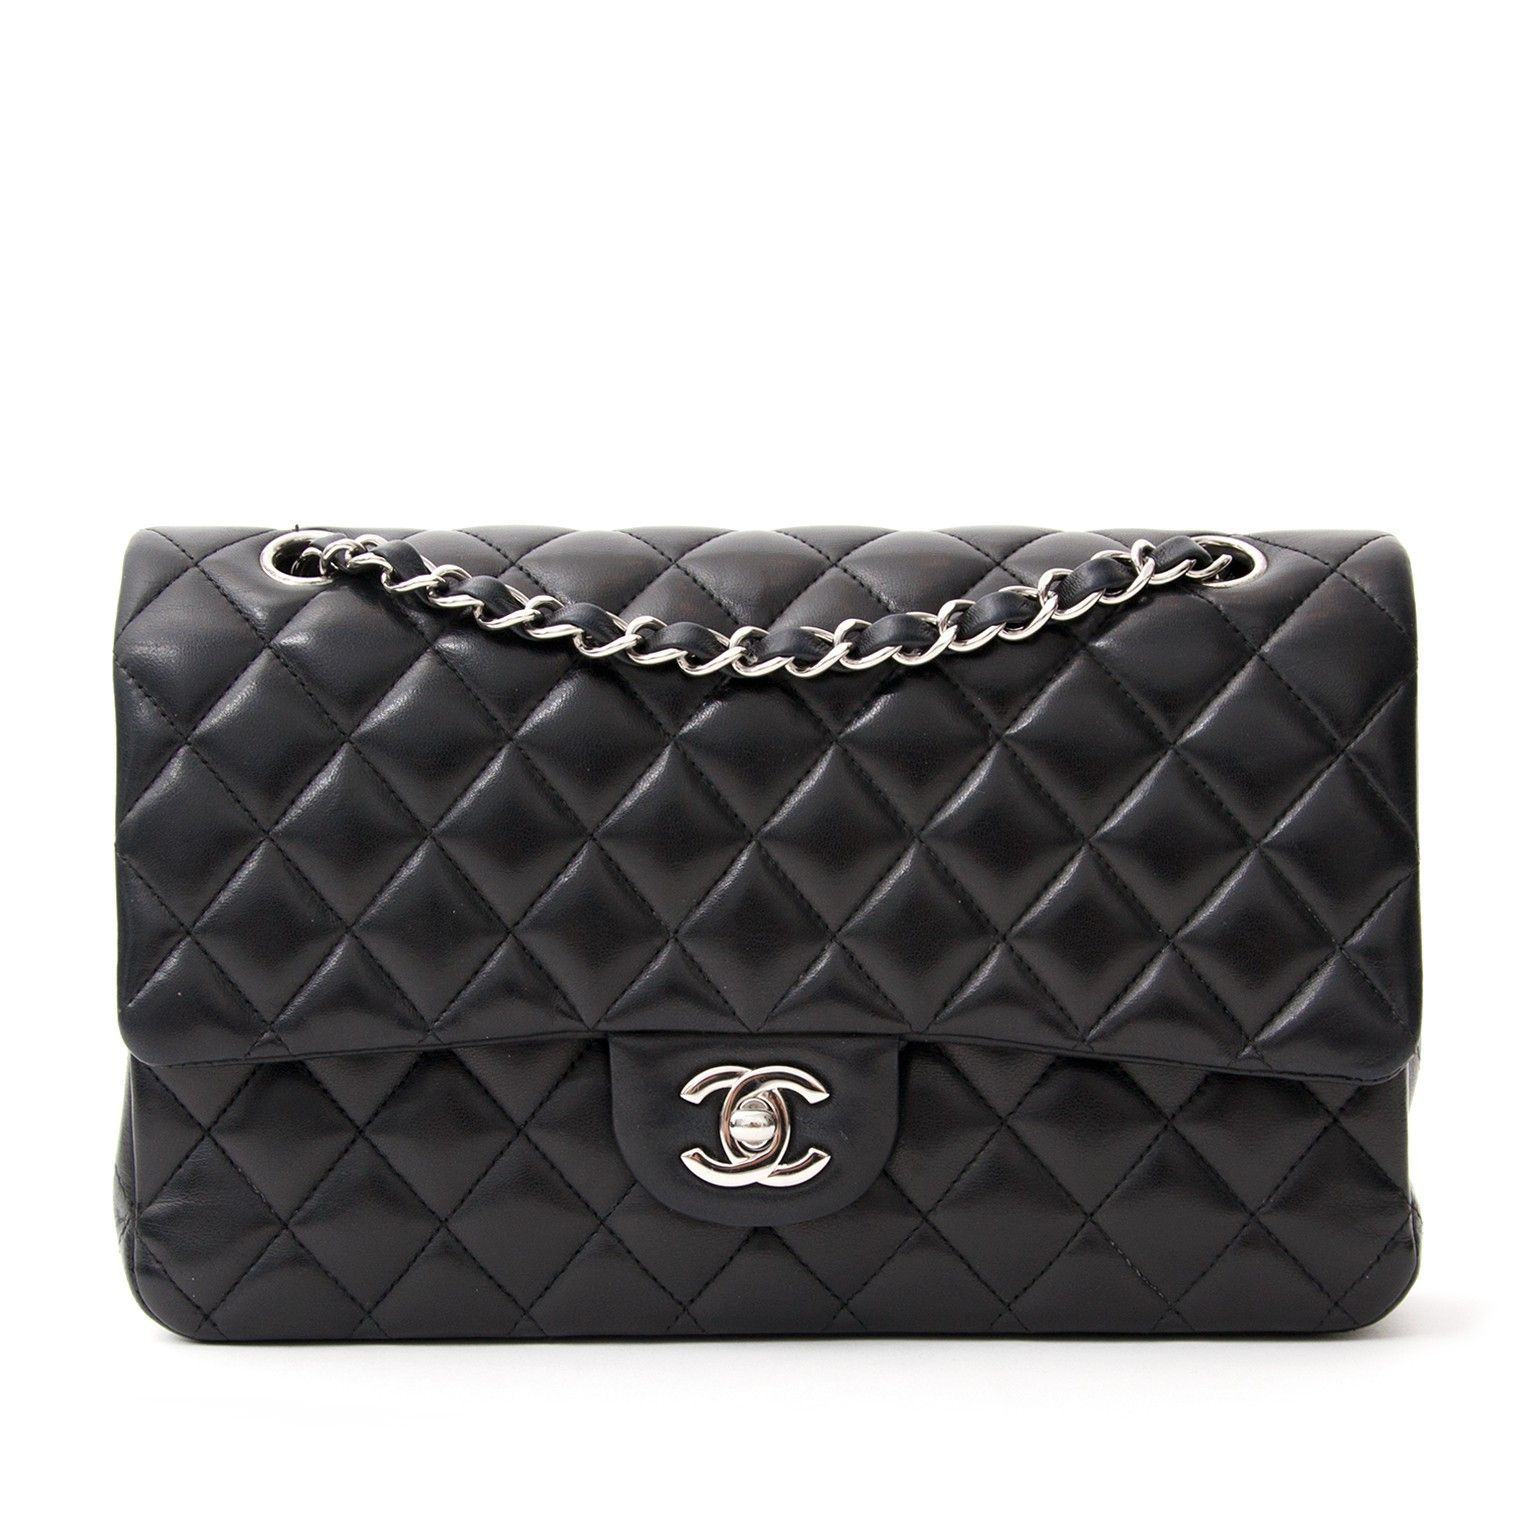 867996aa60 Buy this beautiful black classic Chanel flap bag on Labellov, an online  platform for secondhand preloved luxury bags. Bezoek Labellov, een online  platform ...